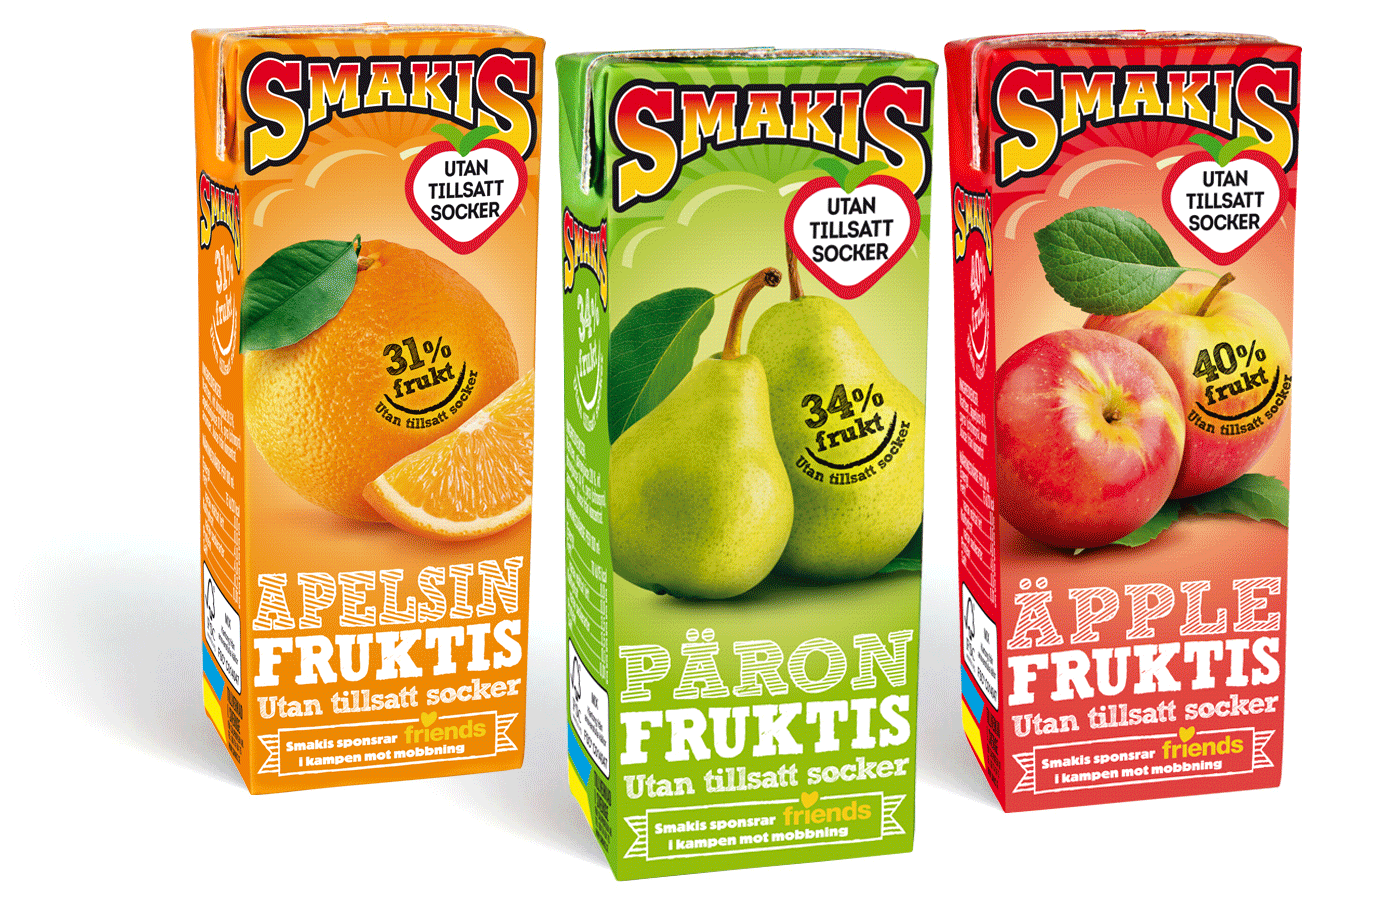 Smakis-fruktis-alla.png